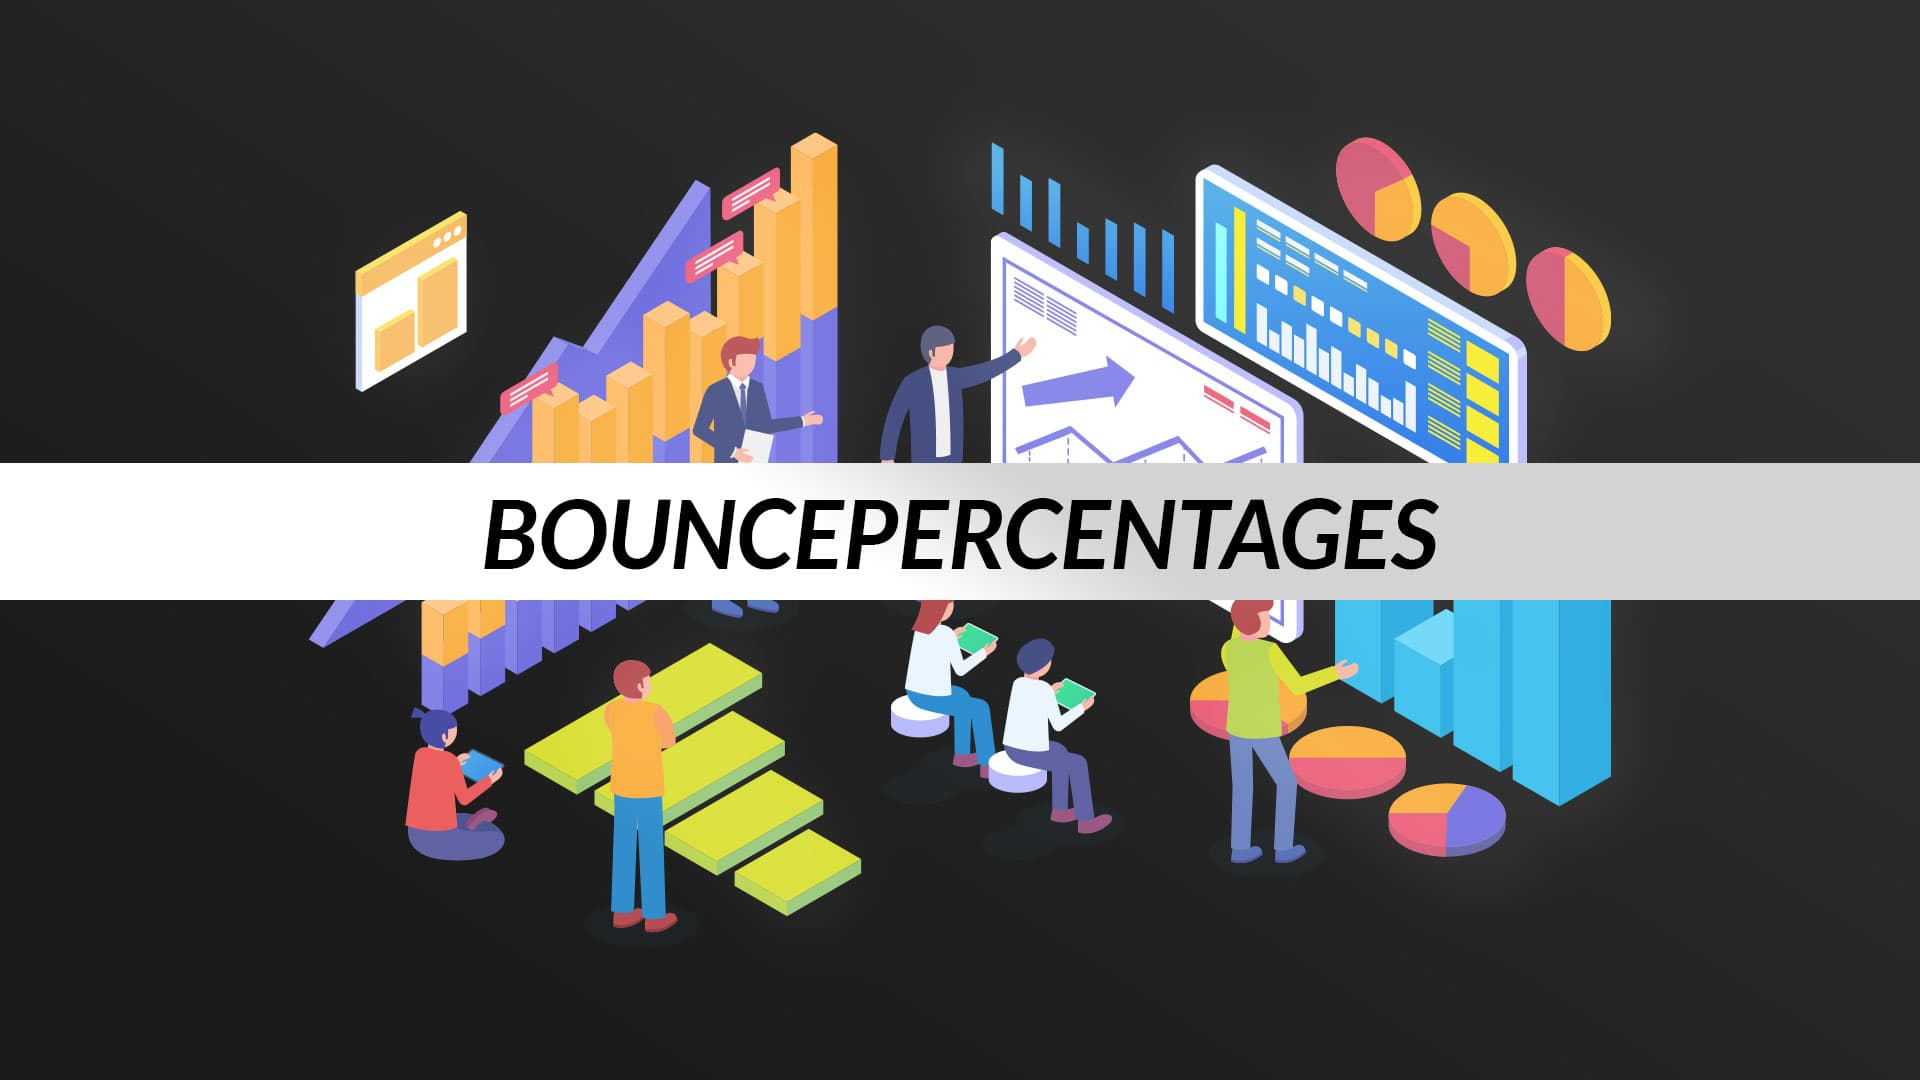 Alles over bouncepercentages